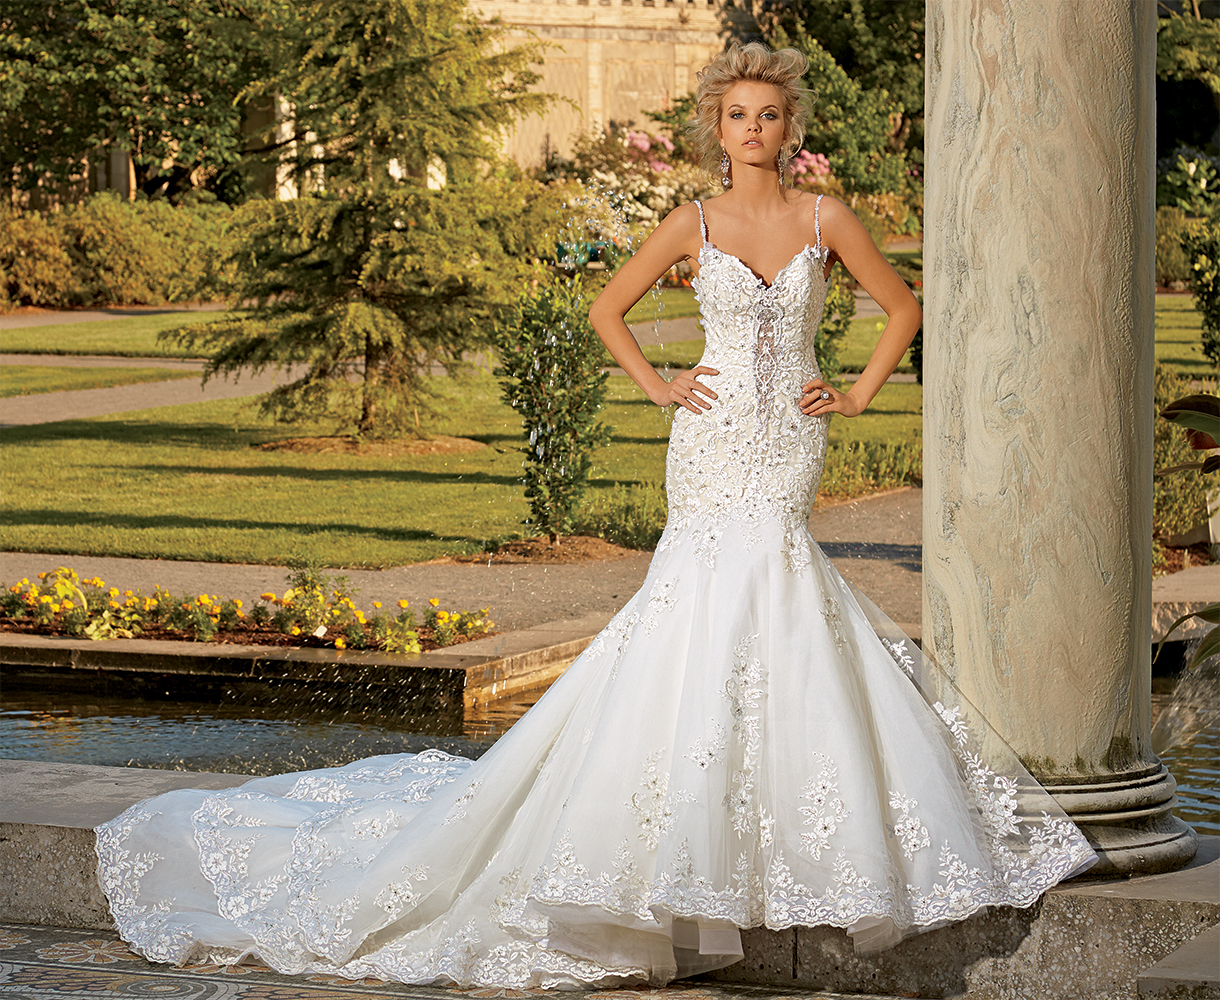 Bridal Gowns by Eve of Milady - Boutique wedding dresses Style 1539